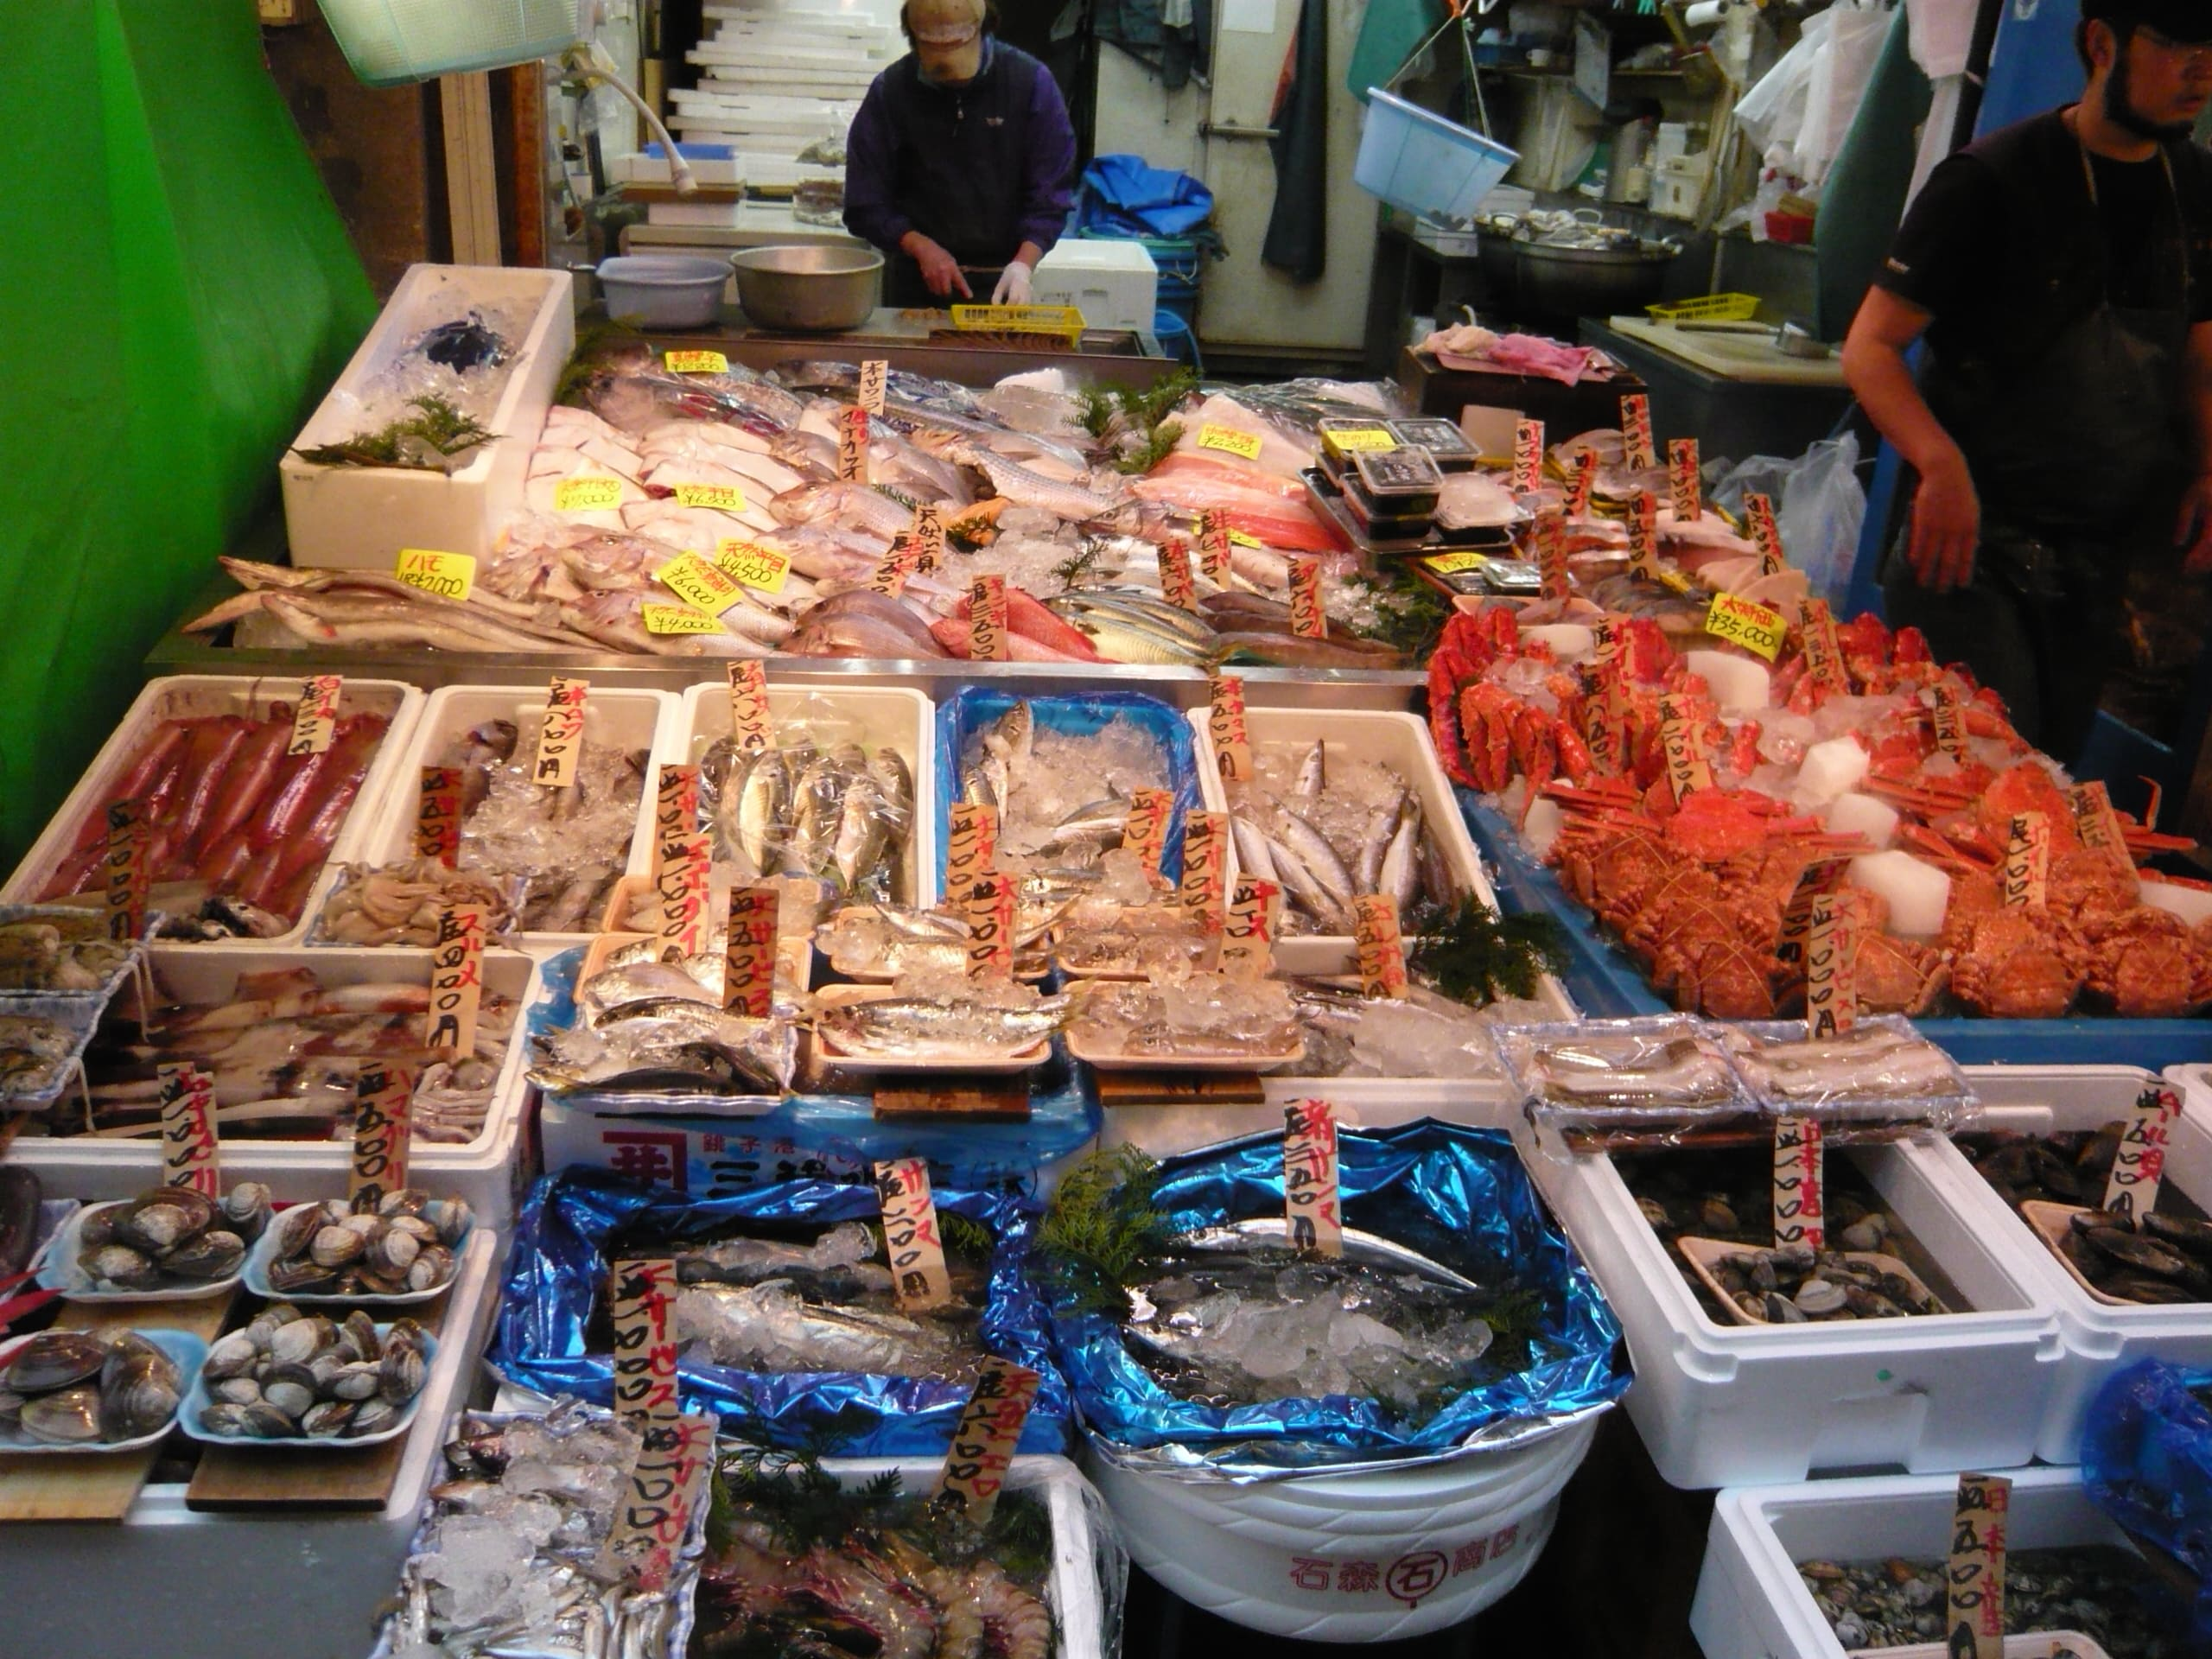 Tsukiji Fish Market is a top point of interest in Tokyo